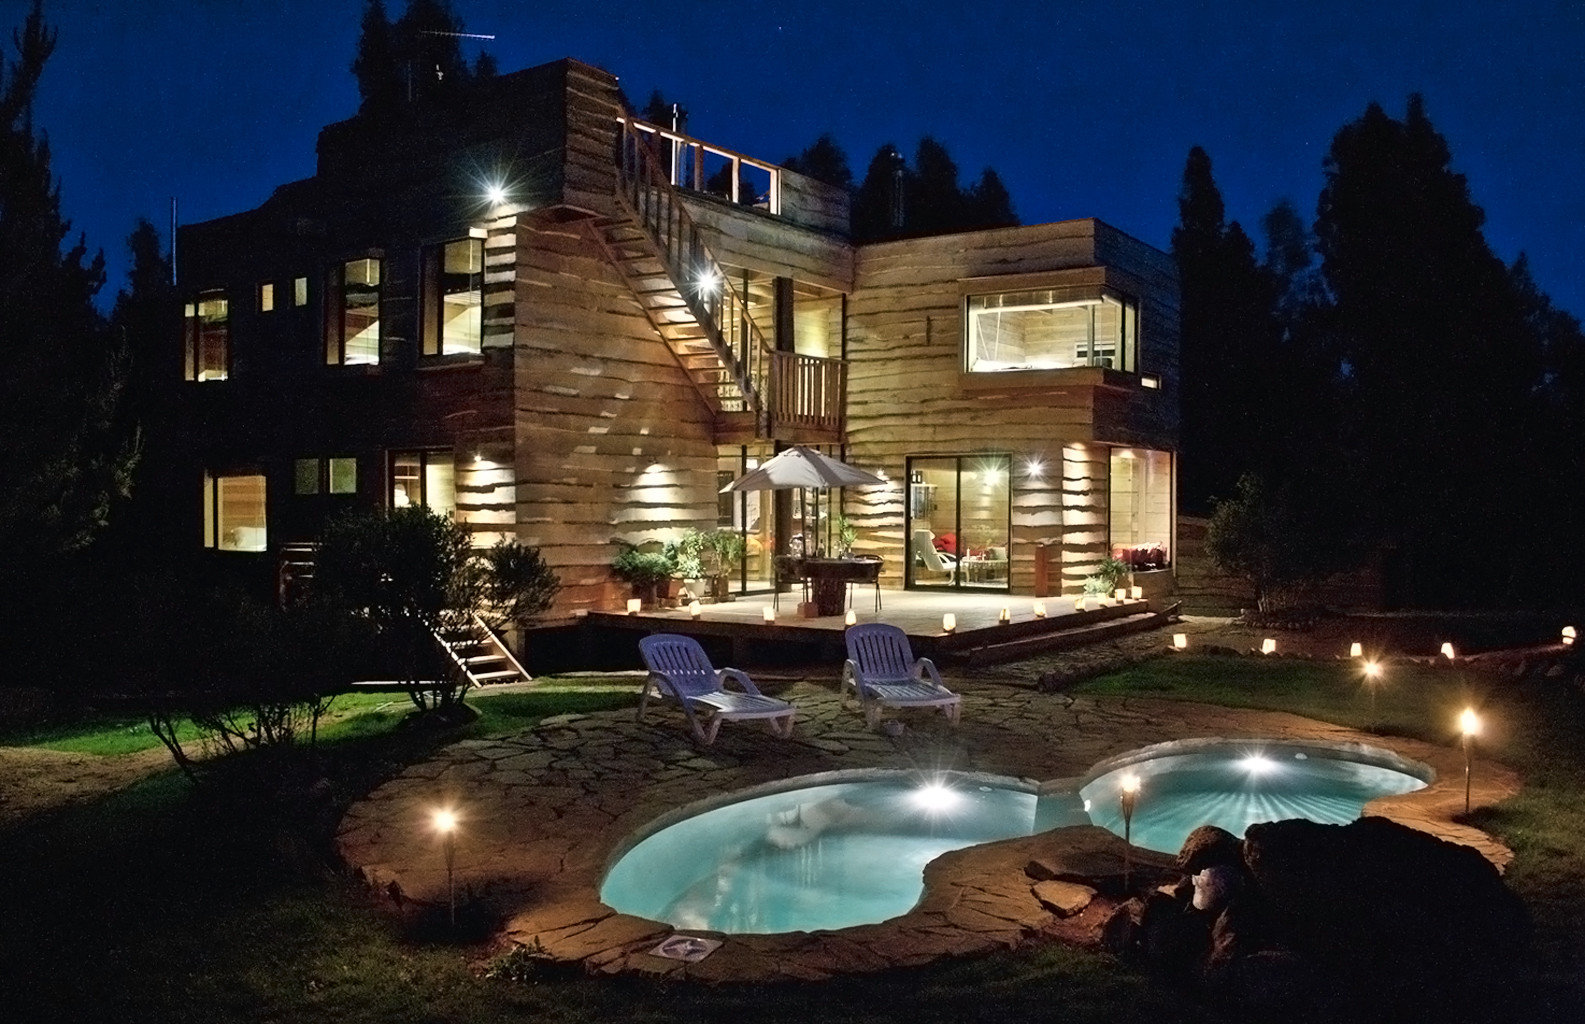 Exterior Grounds Lodge Romantic Rustic swimming pool night landscape lighting mansion light lighting evening Resort water feature backyard dark